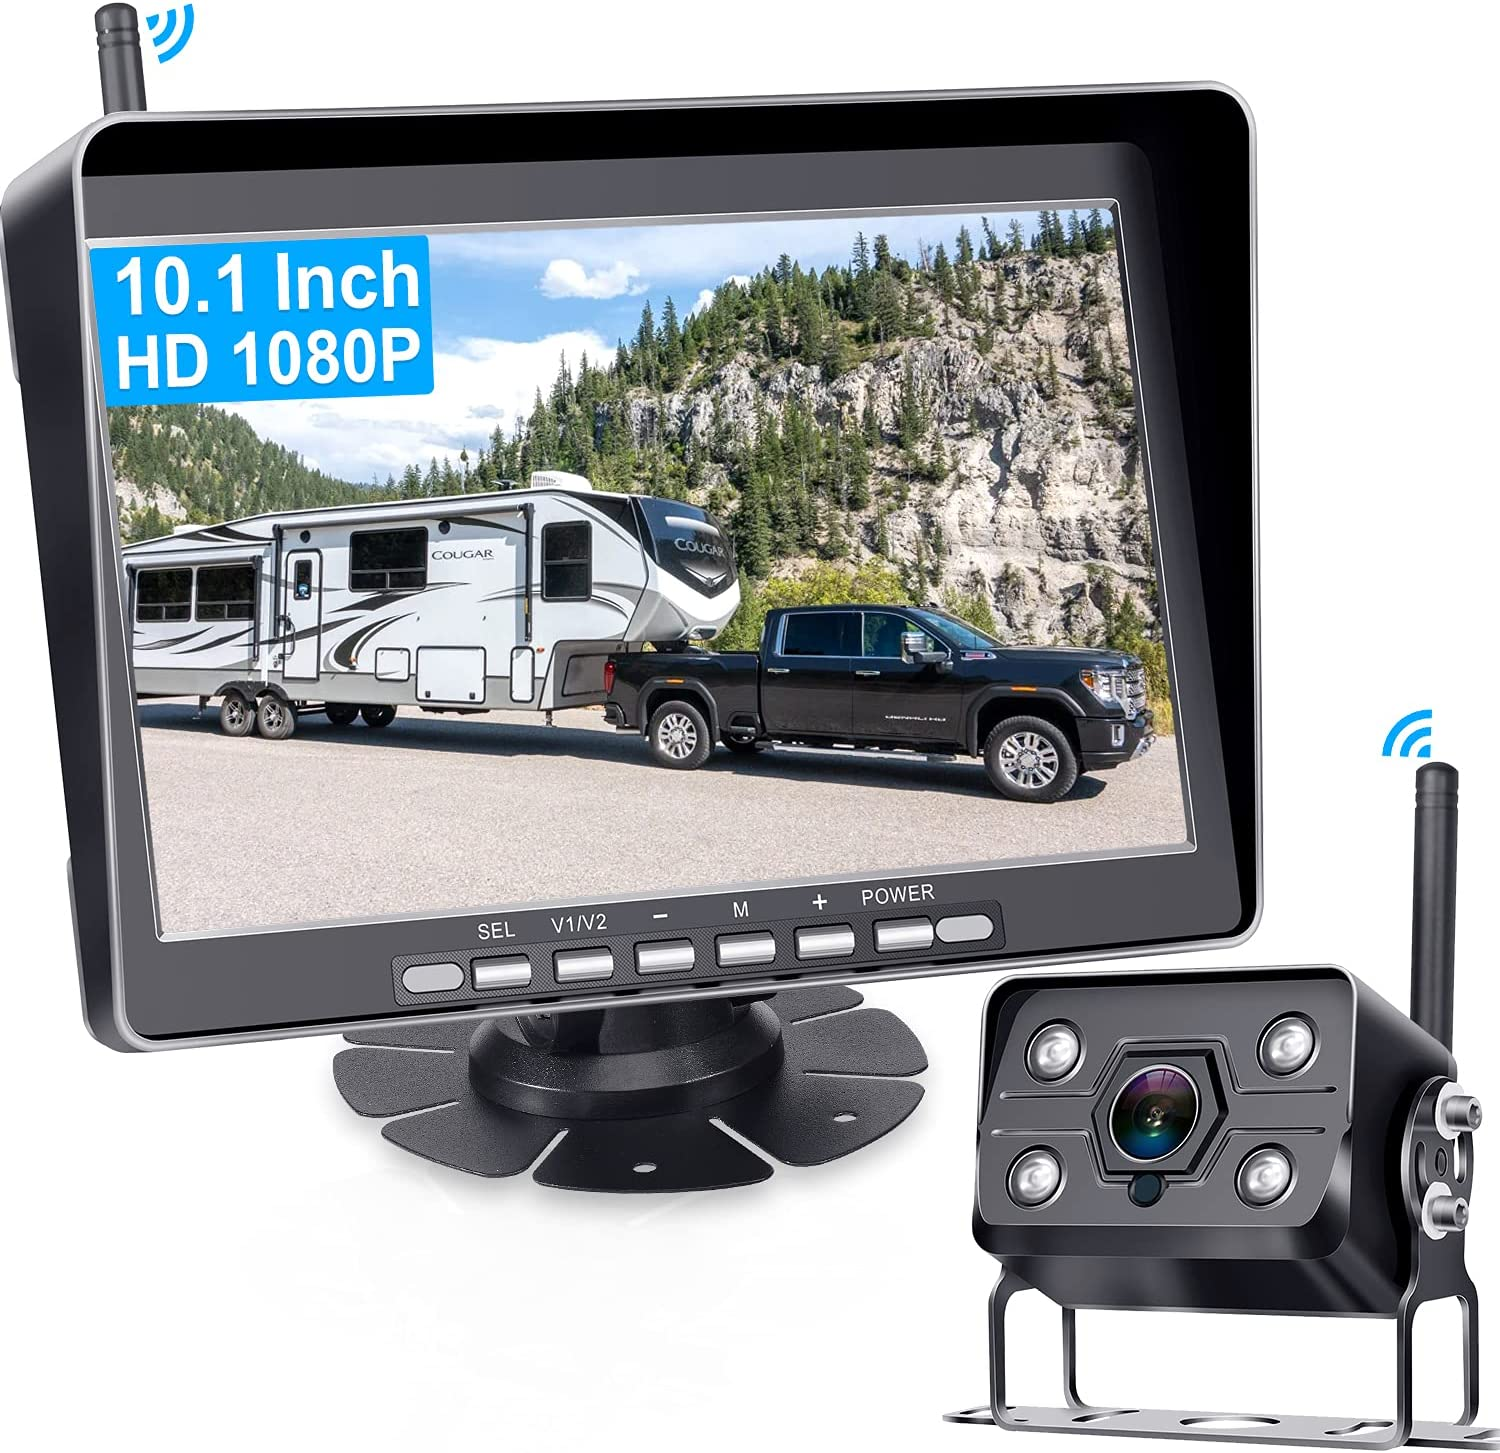 AMTIFO A11 HD 1080P RV Wireless Backup Camera,10 Inch Monitor Rear View Camera System with DVR Recording,Support add up to 4 Cameras,IP69K Waterproof,IR Night Vision